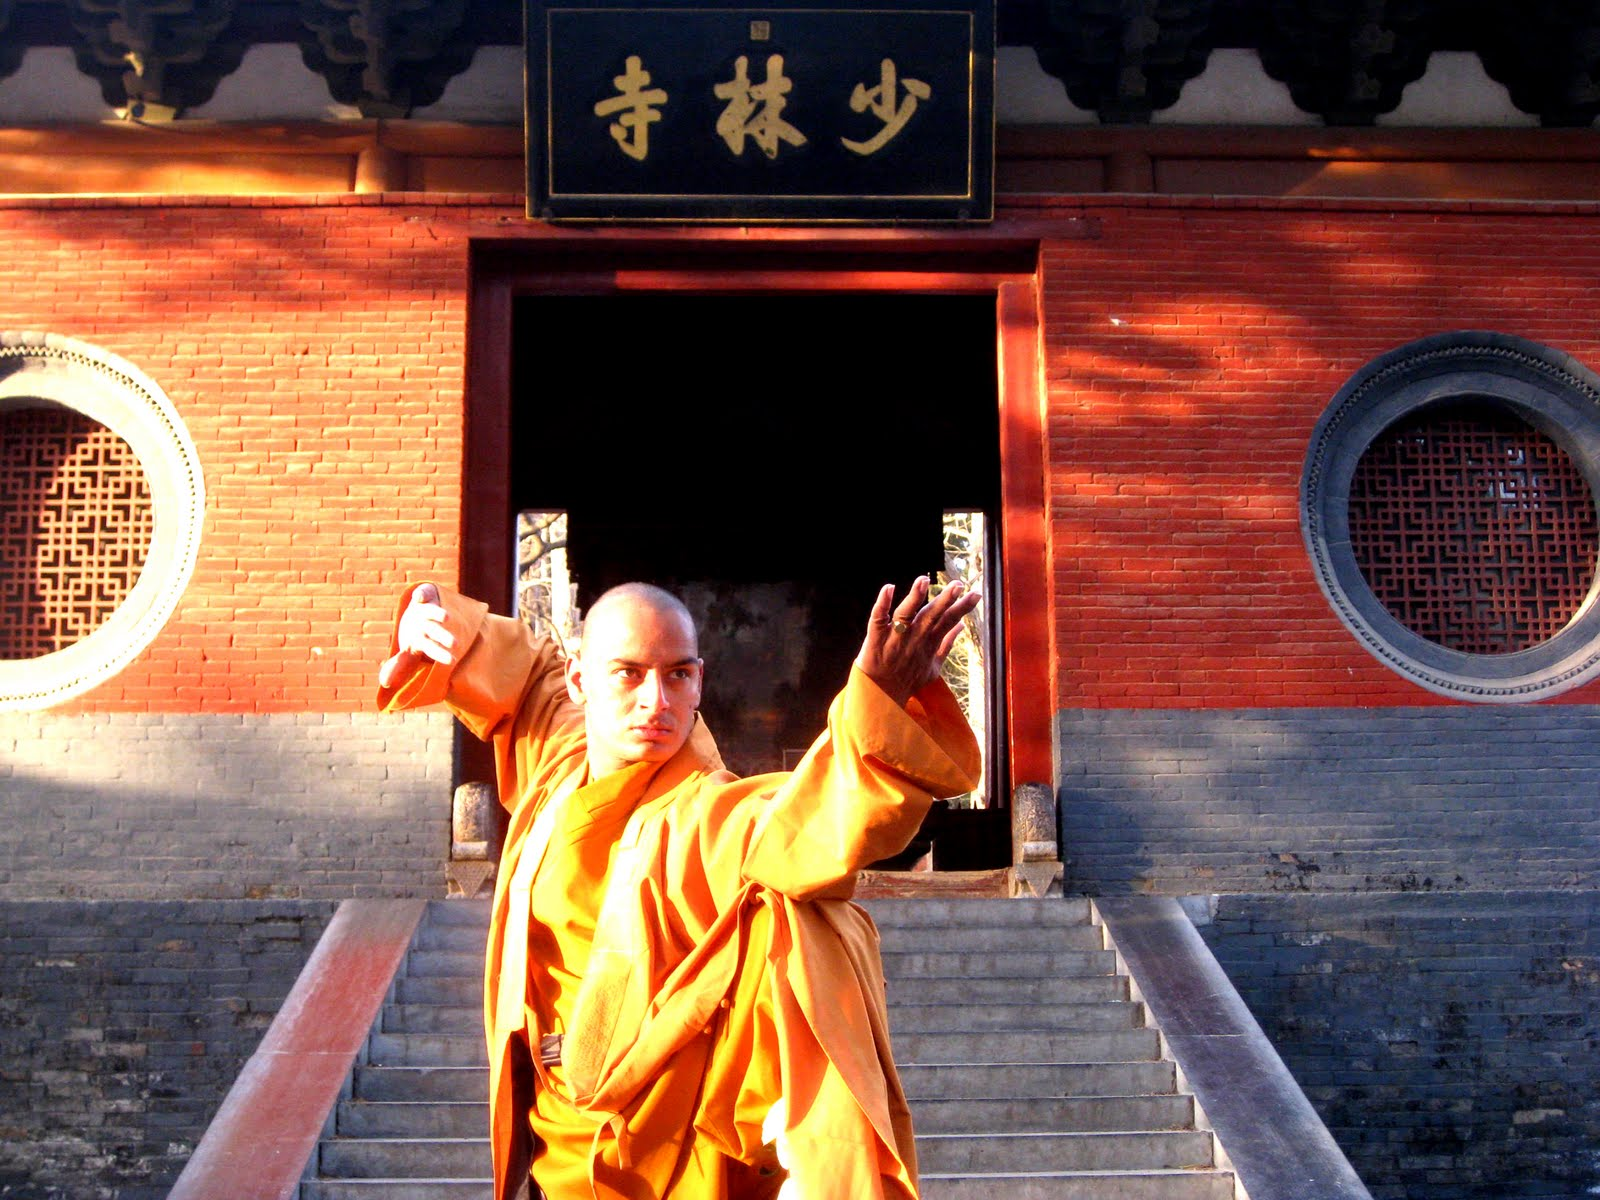 shaolin temple wallpaper - photo #27